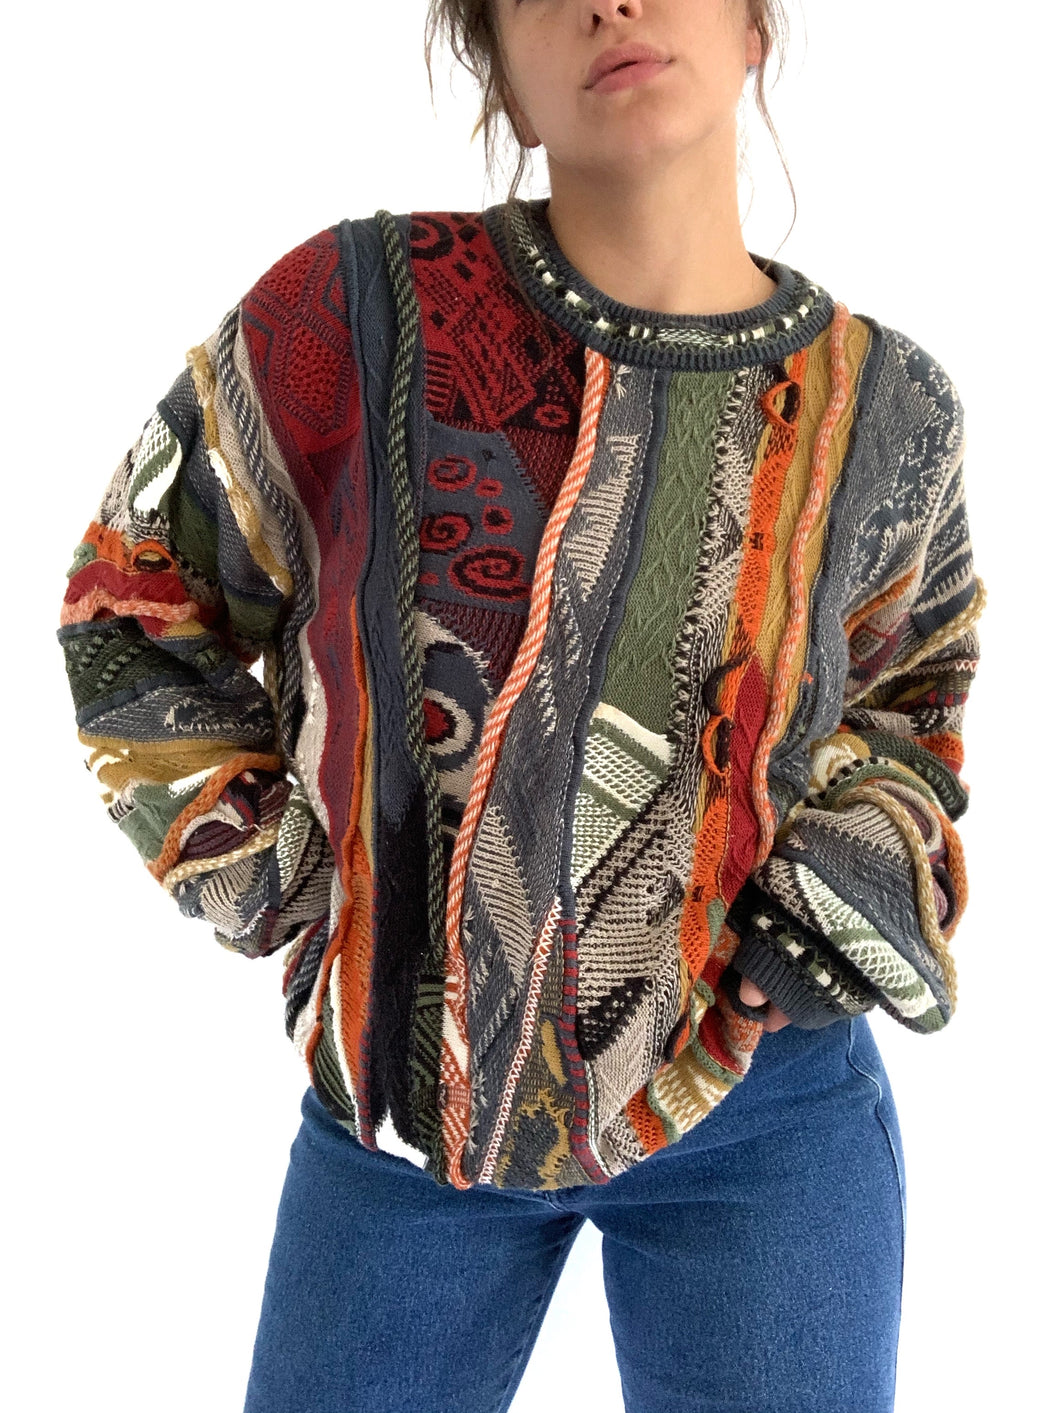 Vintage 1990s Coogi Vibes Sweater